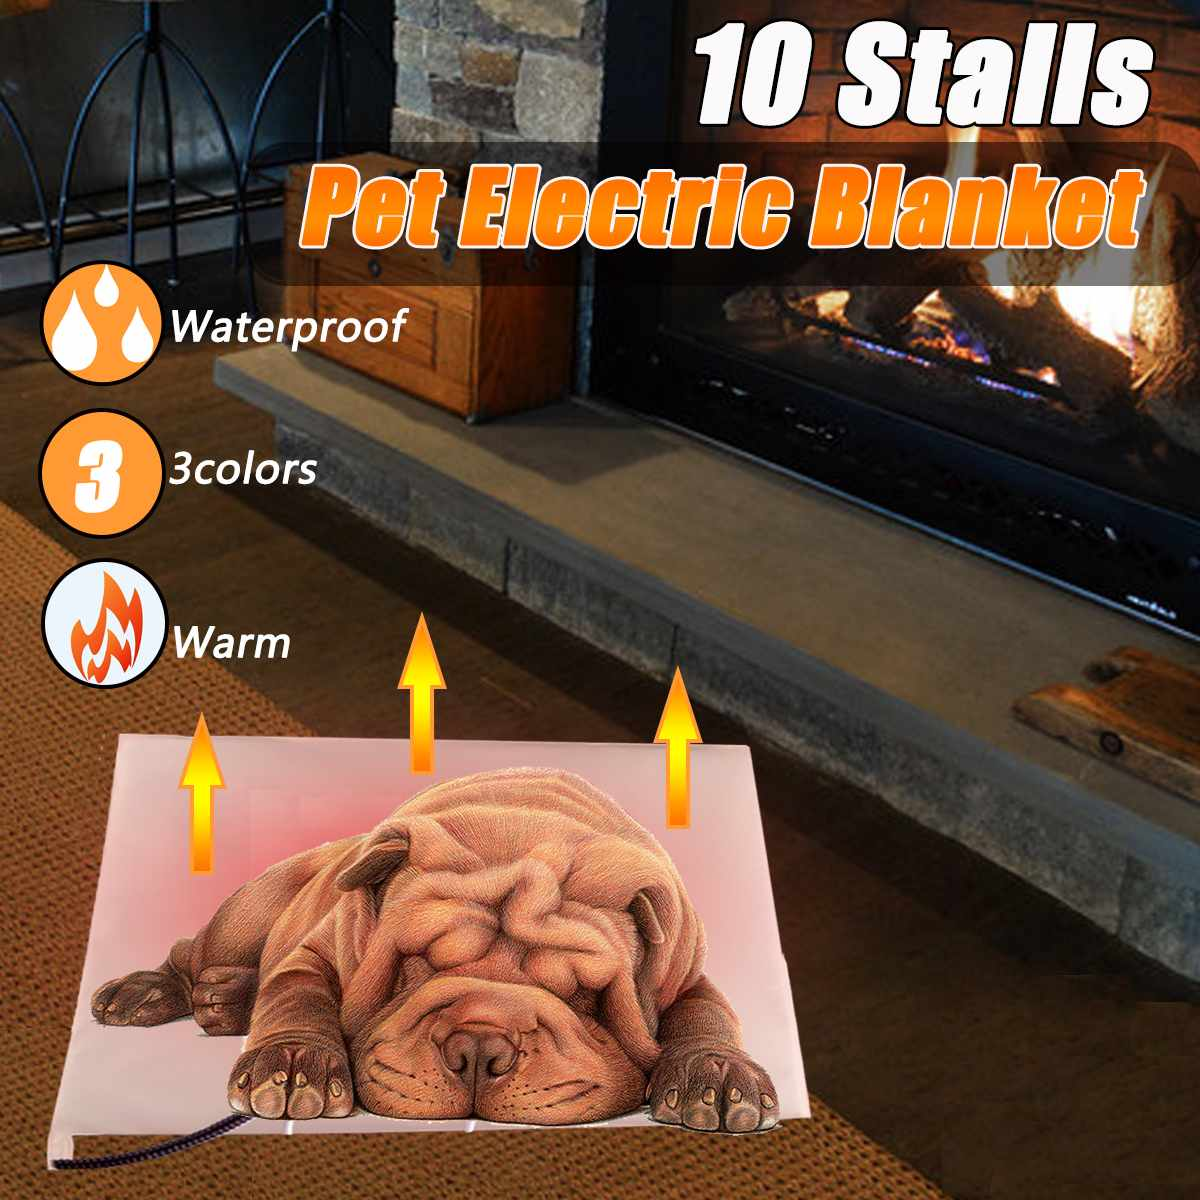 Waterproof Electric Heating Pad 10 Stalls Adjusted Temperature Scratch Prevention Cat Dog Bed Winter Warm Electric Blanket MatWaterproof Electric Heating Pad 10 Stalls Adjusted Temperature Scratch Prevention Cat Dog Bed Winter Warm Electric Blanket Mat